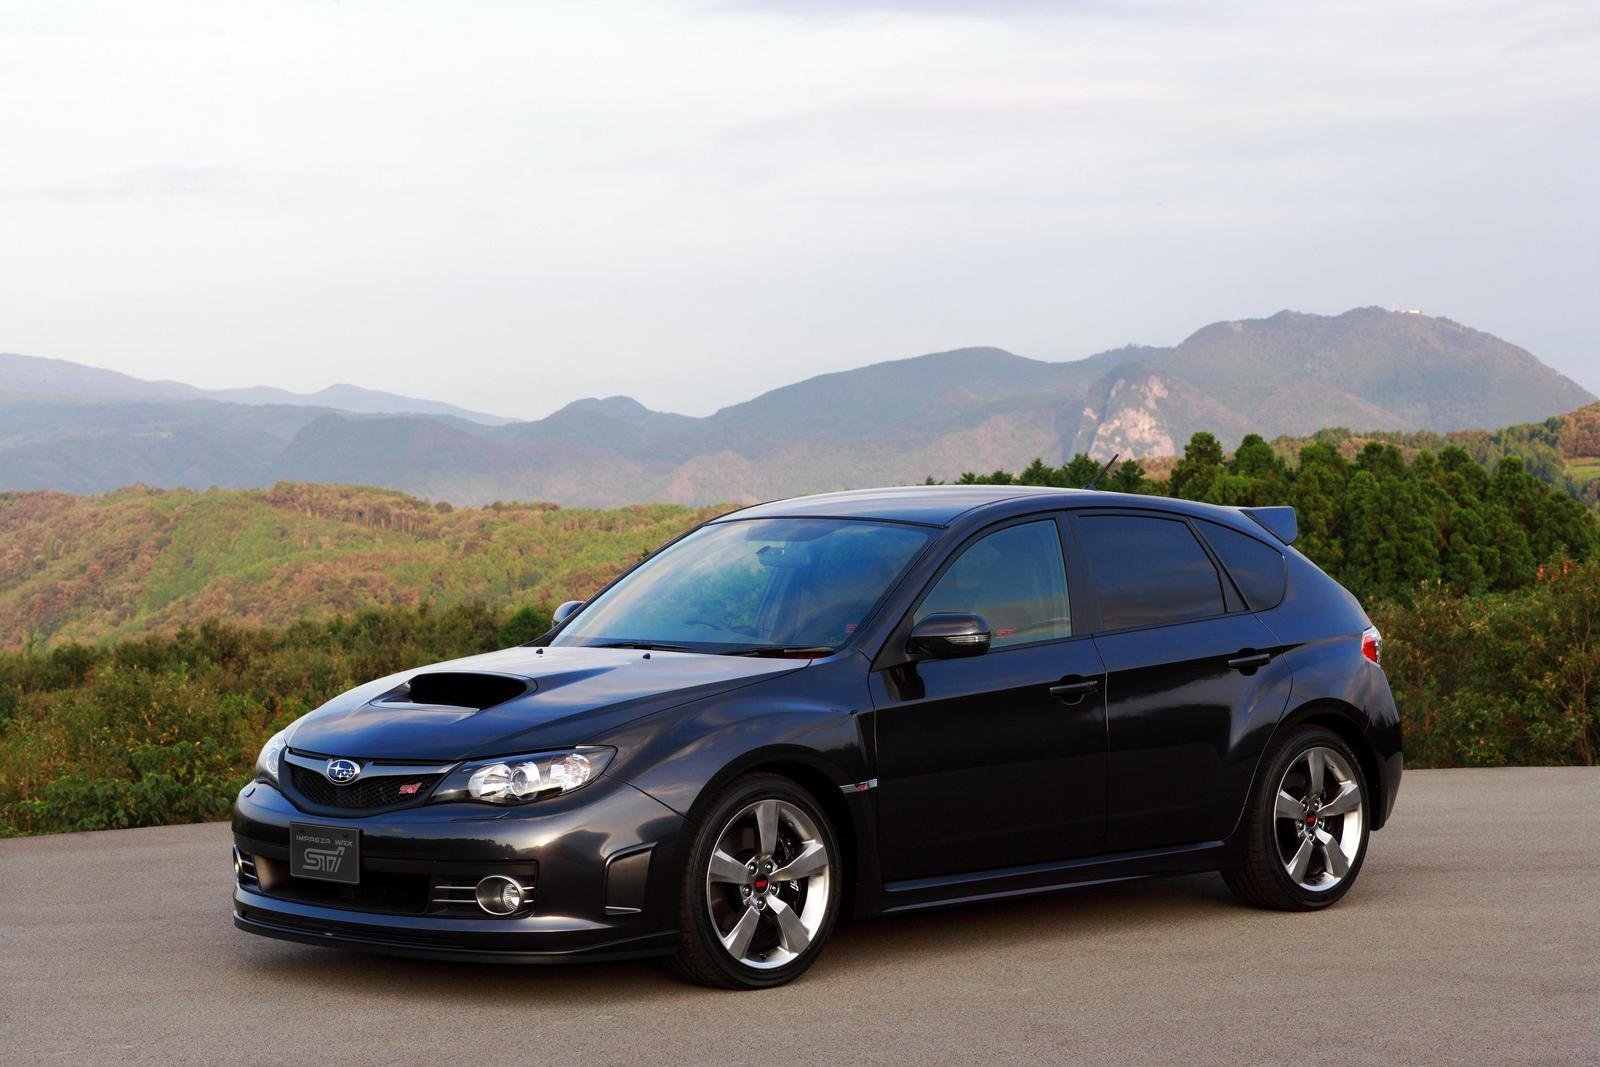 2008 subaru impreza wrx sti picture 208556 car review top speed. Black Bedroom Furniture Sets. Home Design Ideas